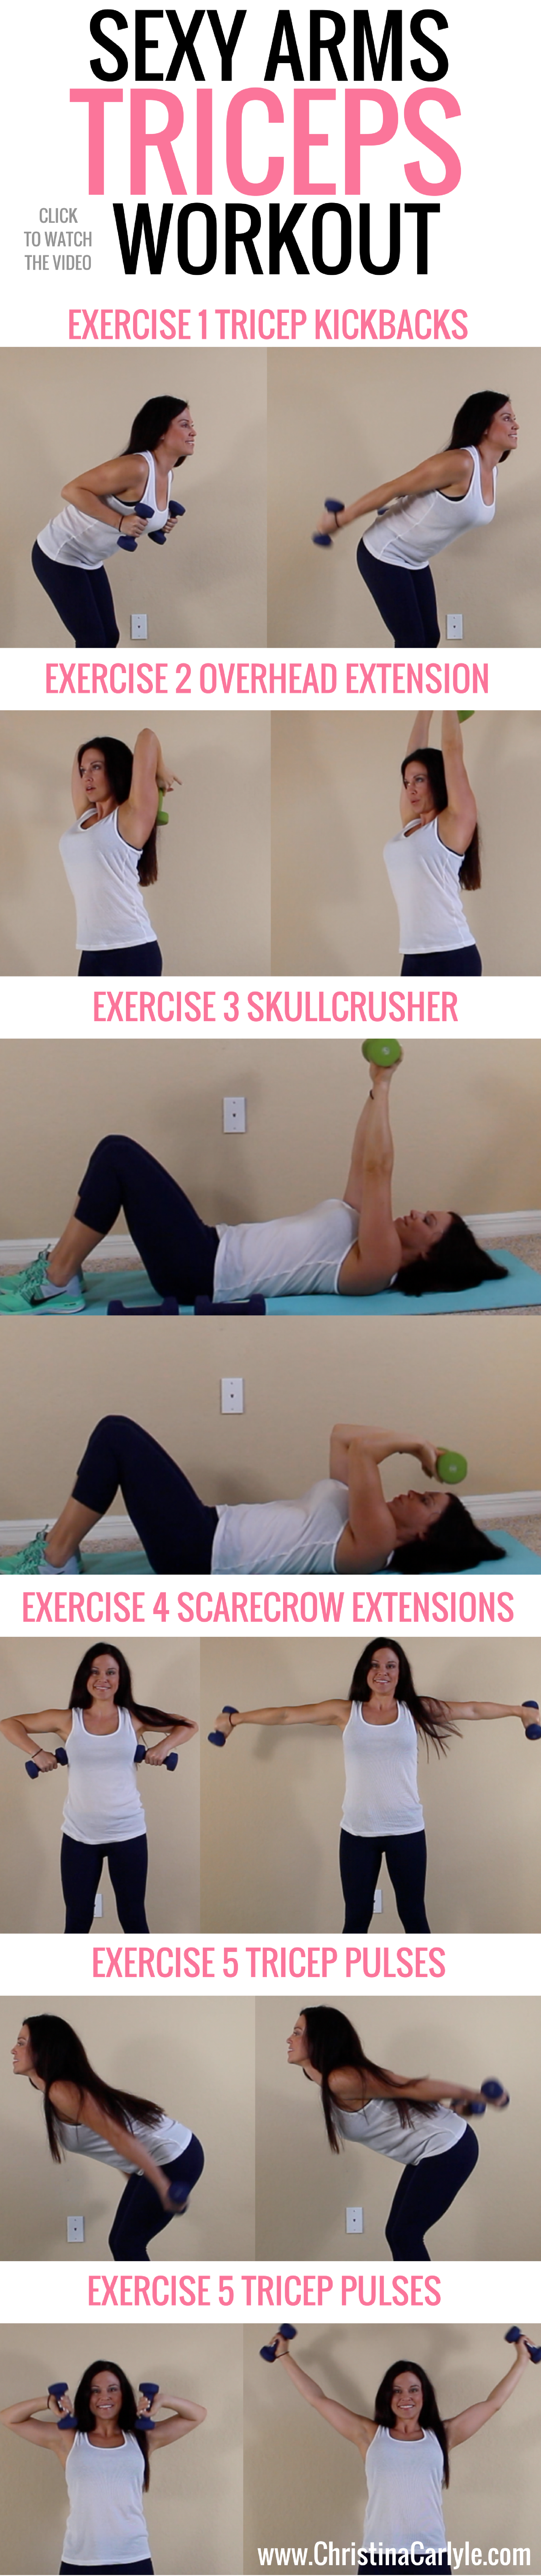 Women Tricep Exercises - Follow me for more workouts and weight loss tips that really work!